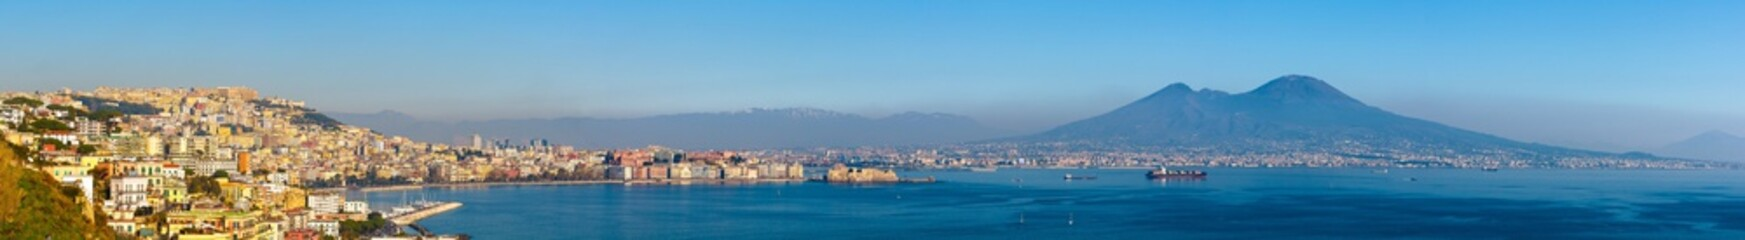 Views of Naples and Mount Vesuvius on a sunny day